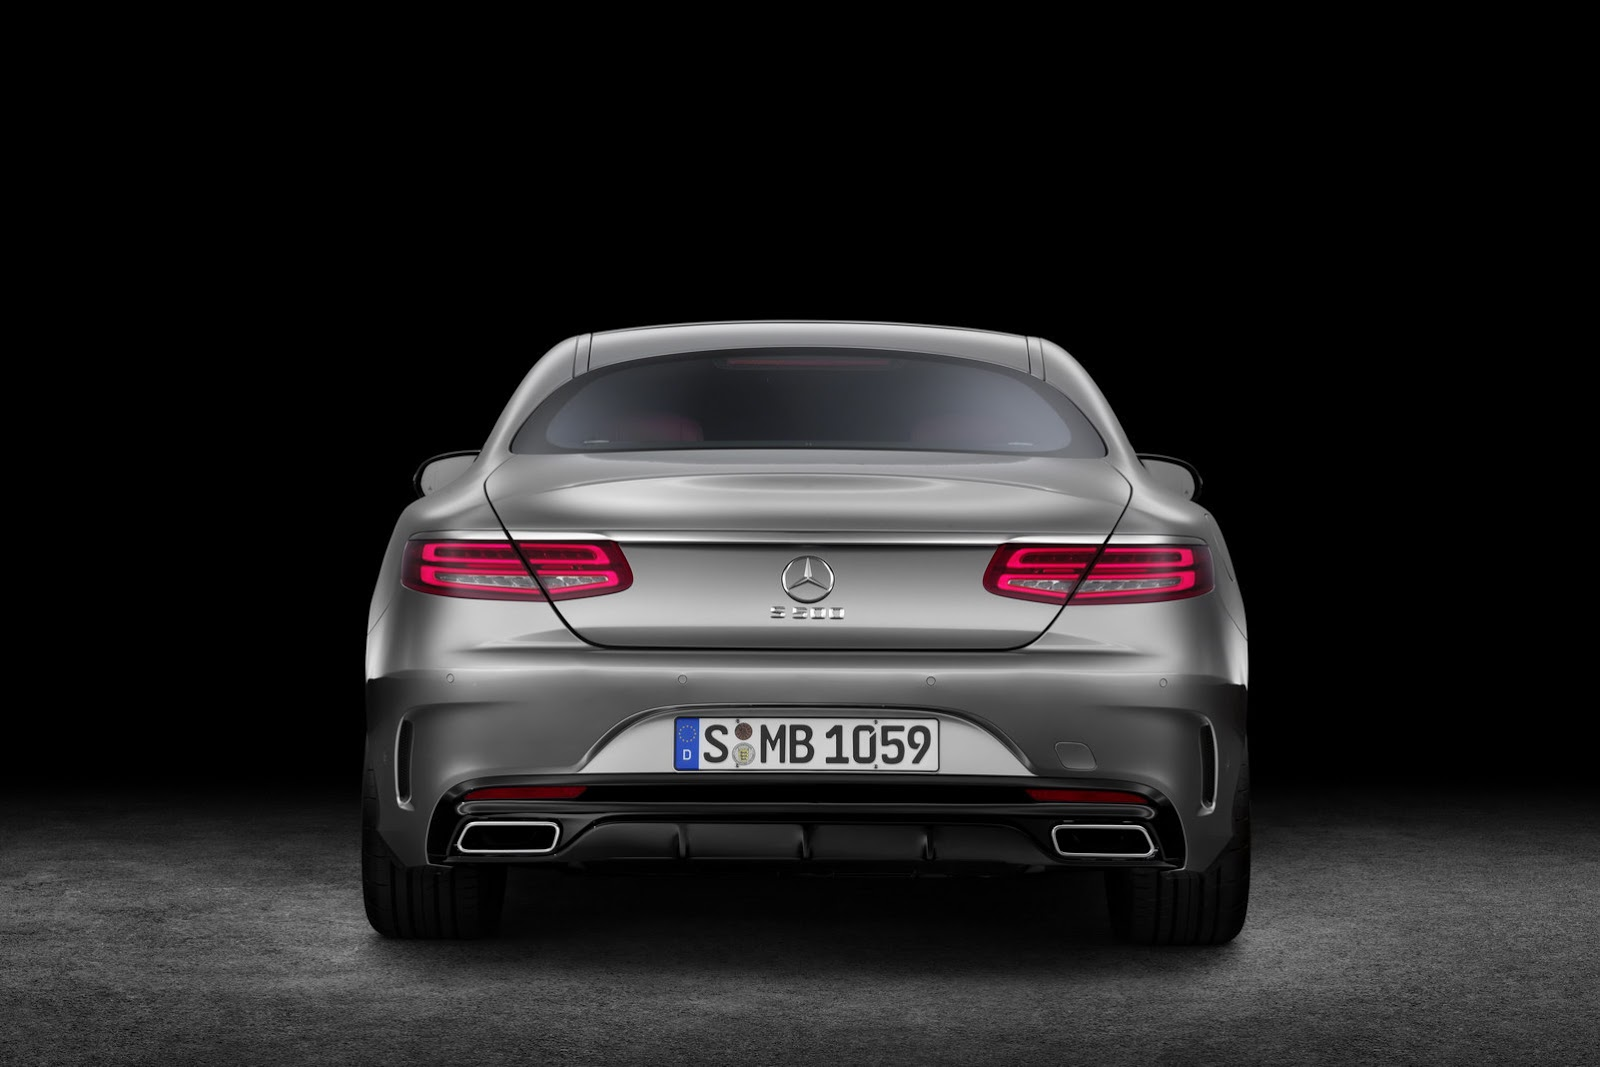 Mercedes-Benz S-class Coupe S500 rear